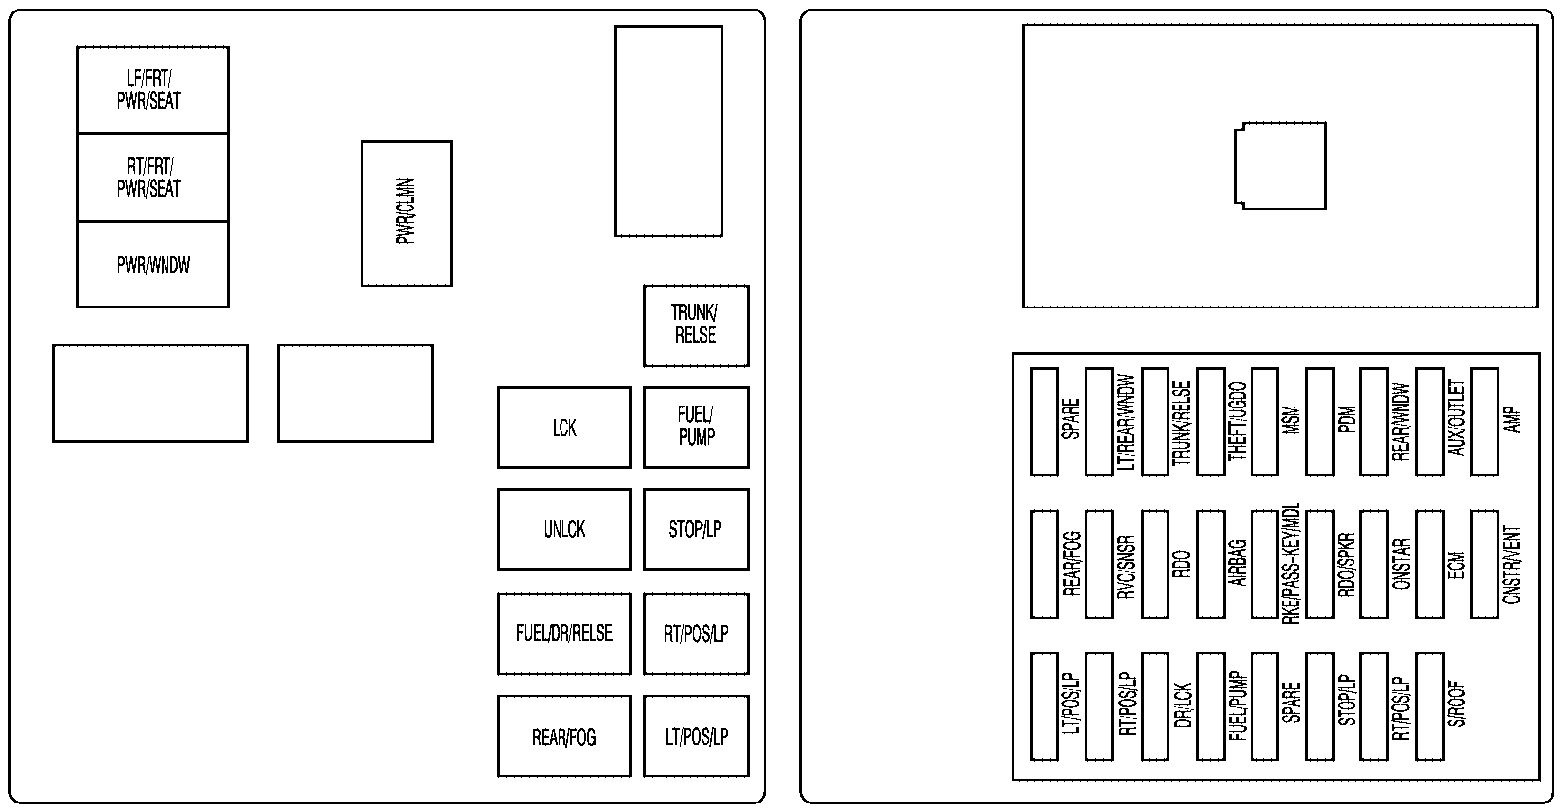 cadillac cts  2009  - fuse box diagram